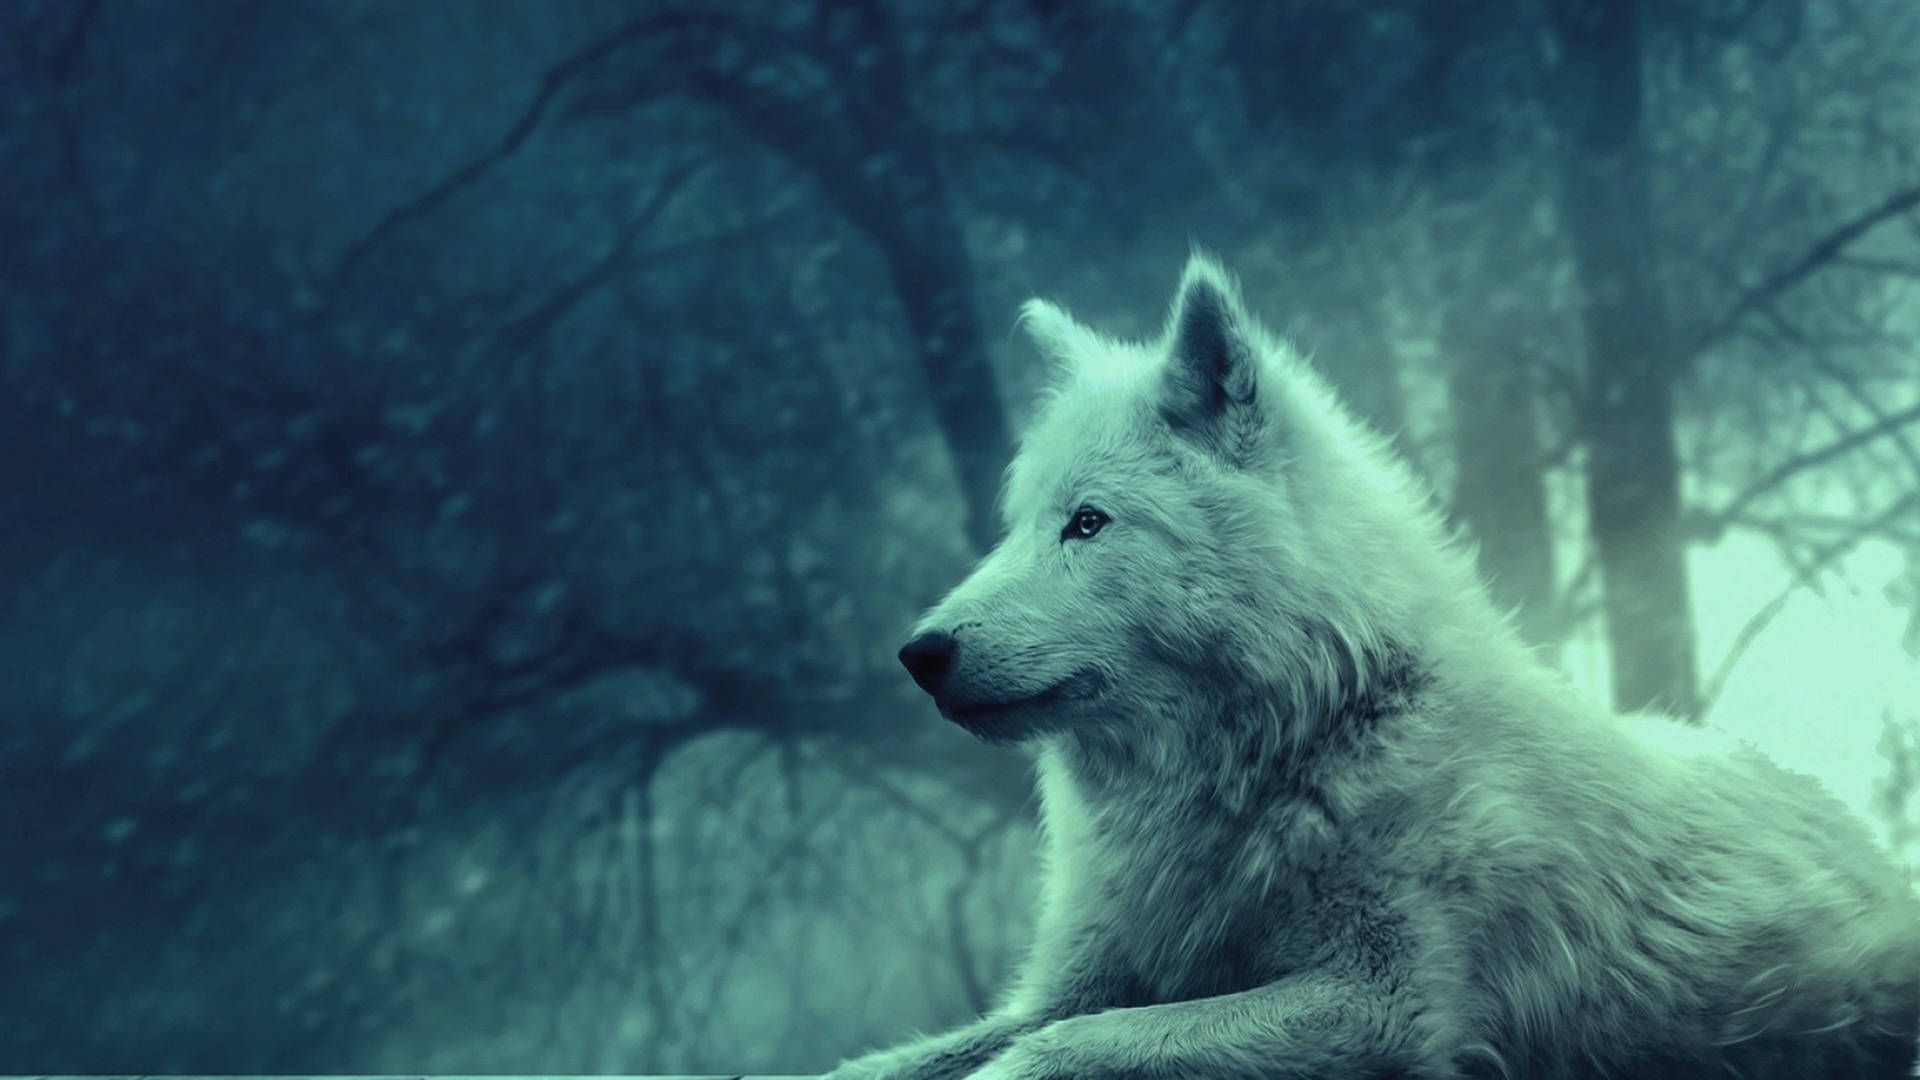 Full HD 1080p Wolf Wallpapers HD, Desktop Backgrounds 1920x1080